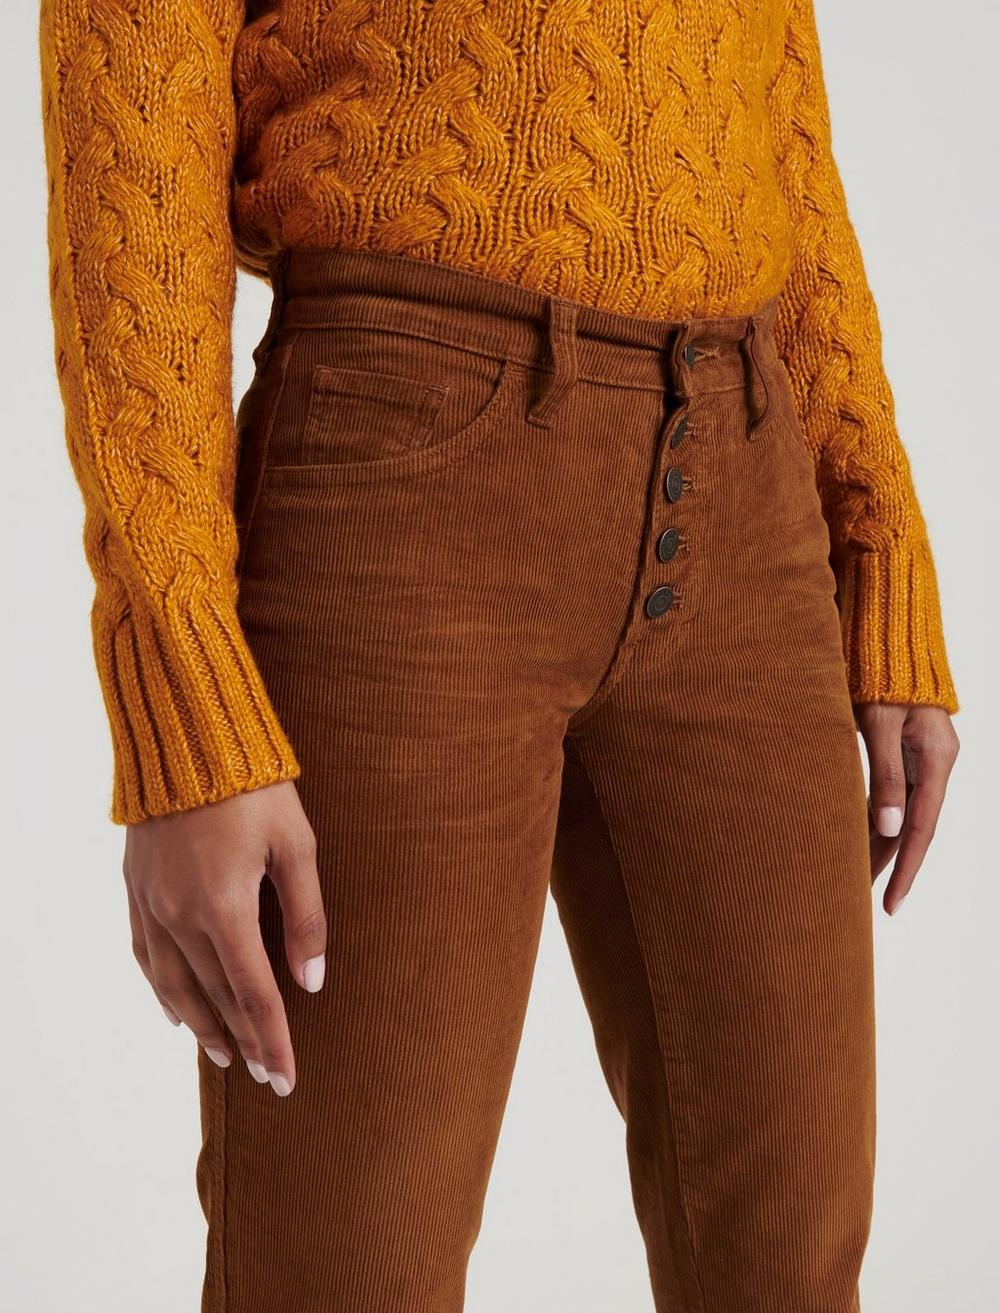 MID RISE AUTHENTIC STRAIGHT CROP CORDUROY JEAN, image 5